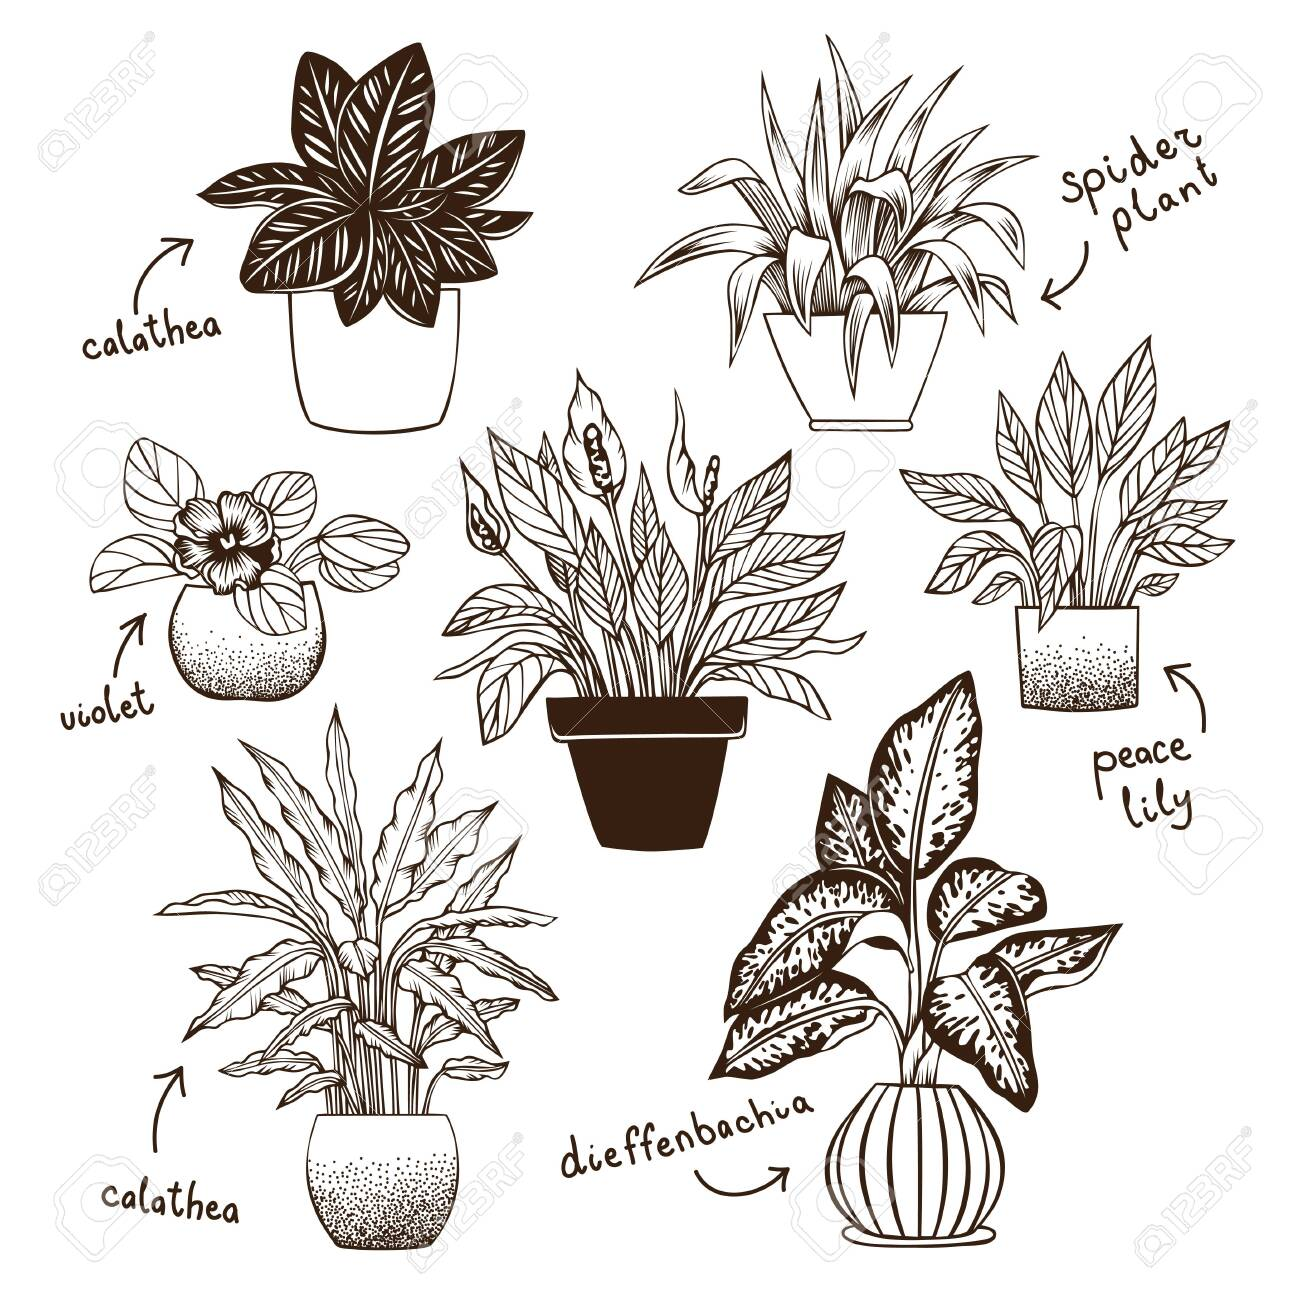 Calatheas Spider Plant Violet Peace Lily And Dieffenbachia Royalty Free Cliparts Vectors And Stock Illustration Image 141438459